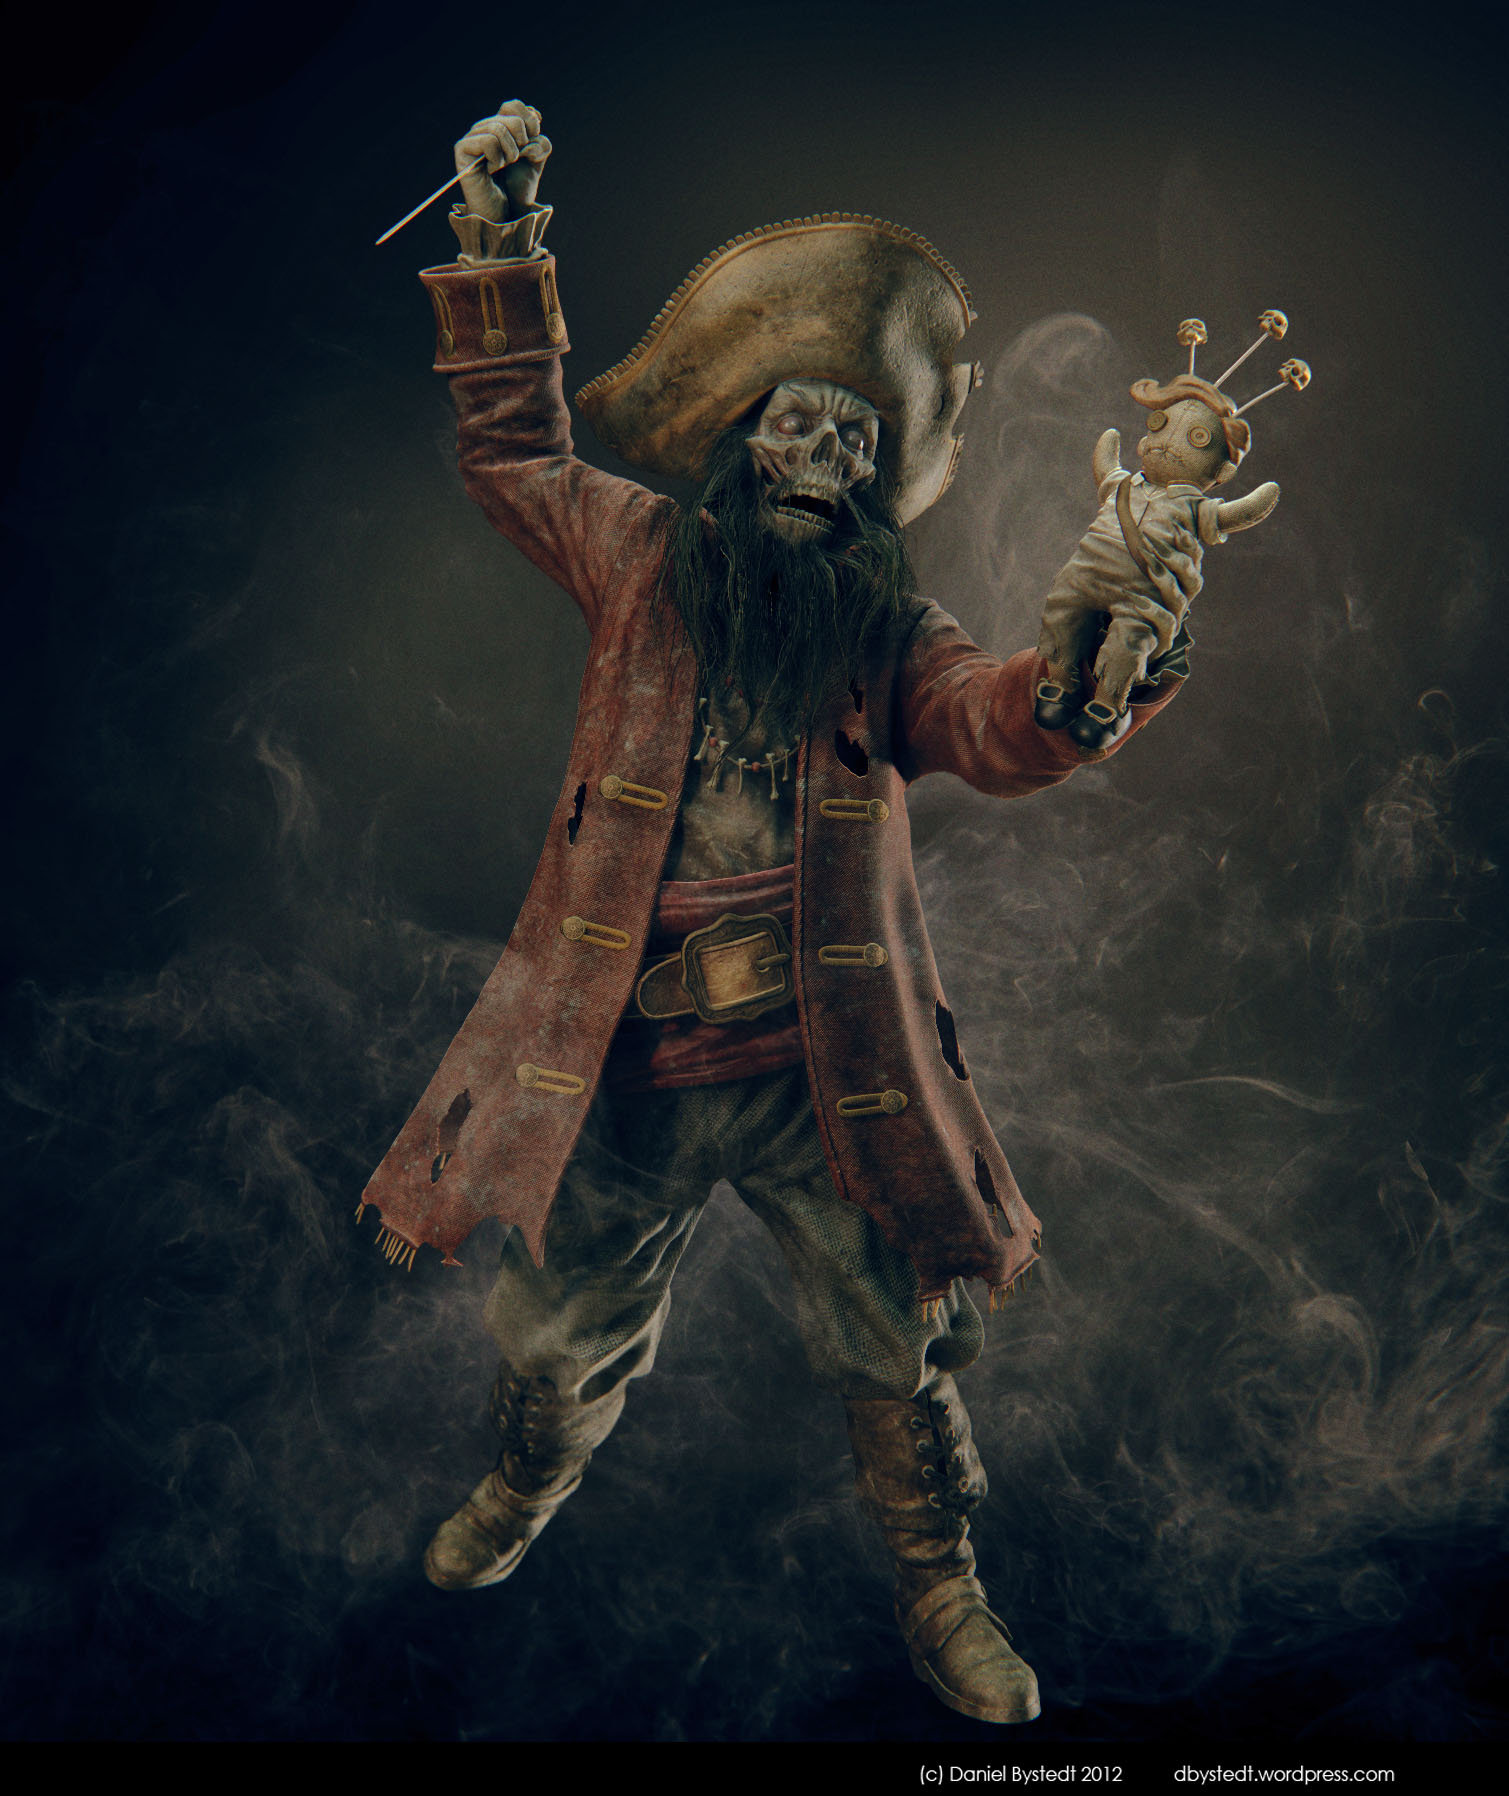 Daniel bystedt lechuck wholebody